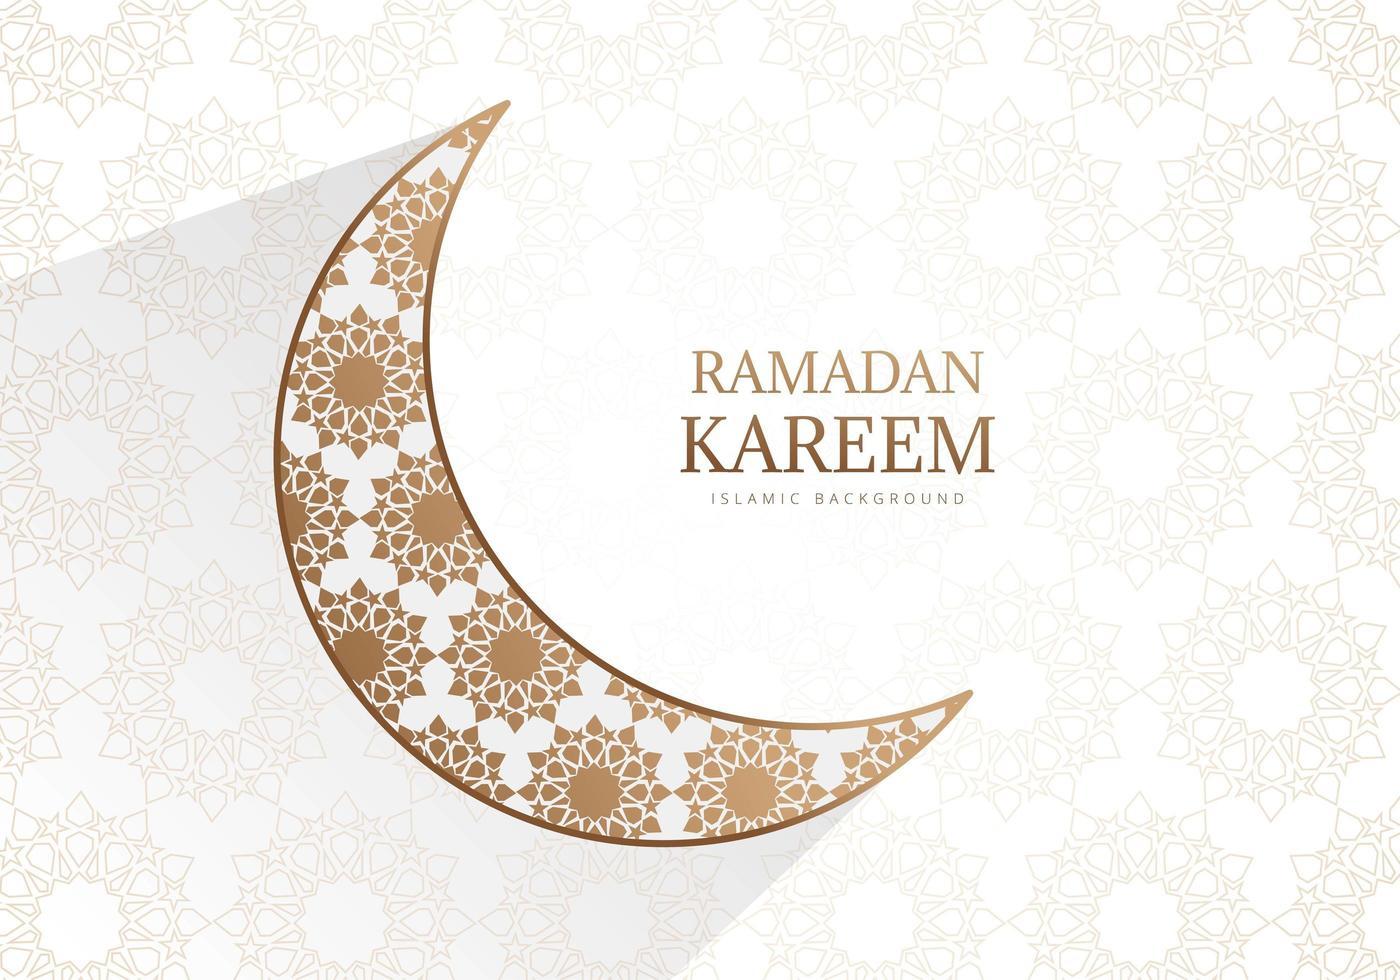 Golden Ornate Crescent Moon Ramadan Kareem Design vector